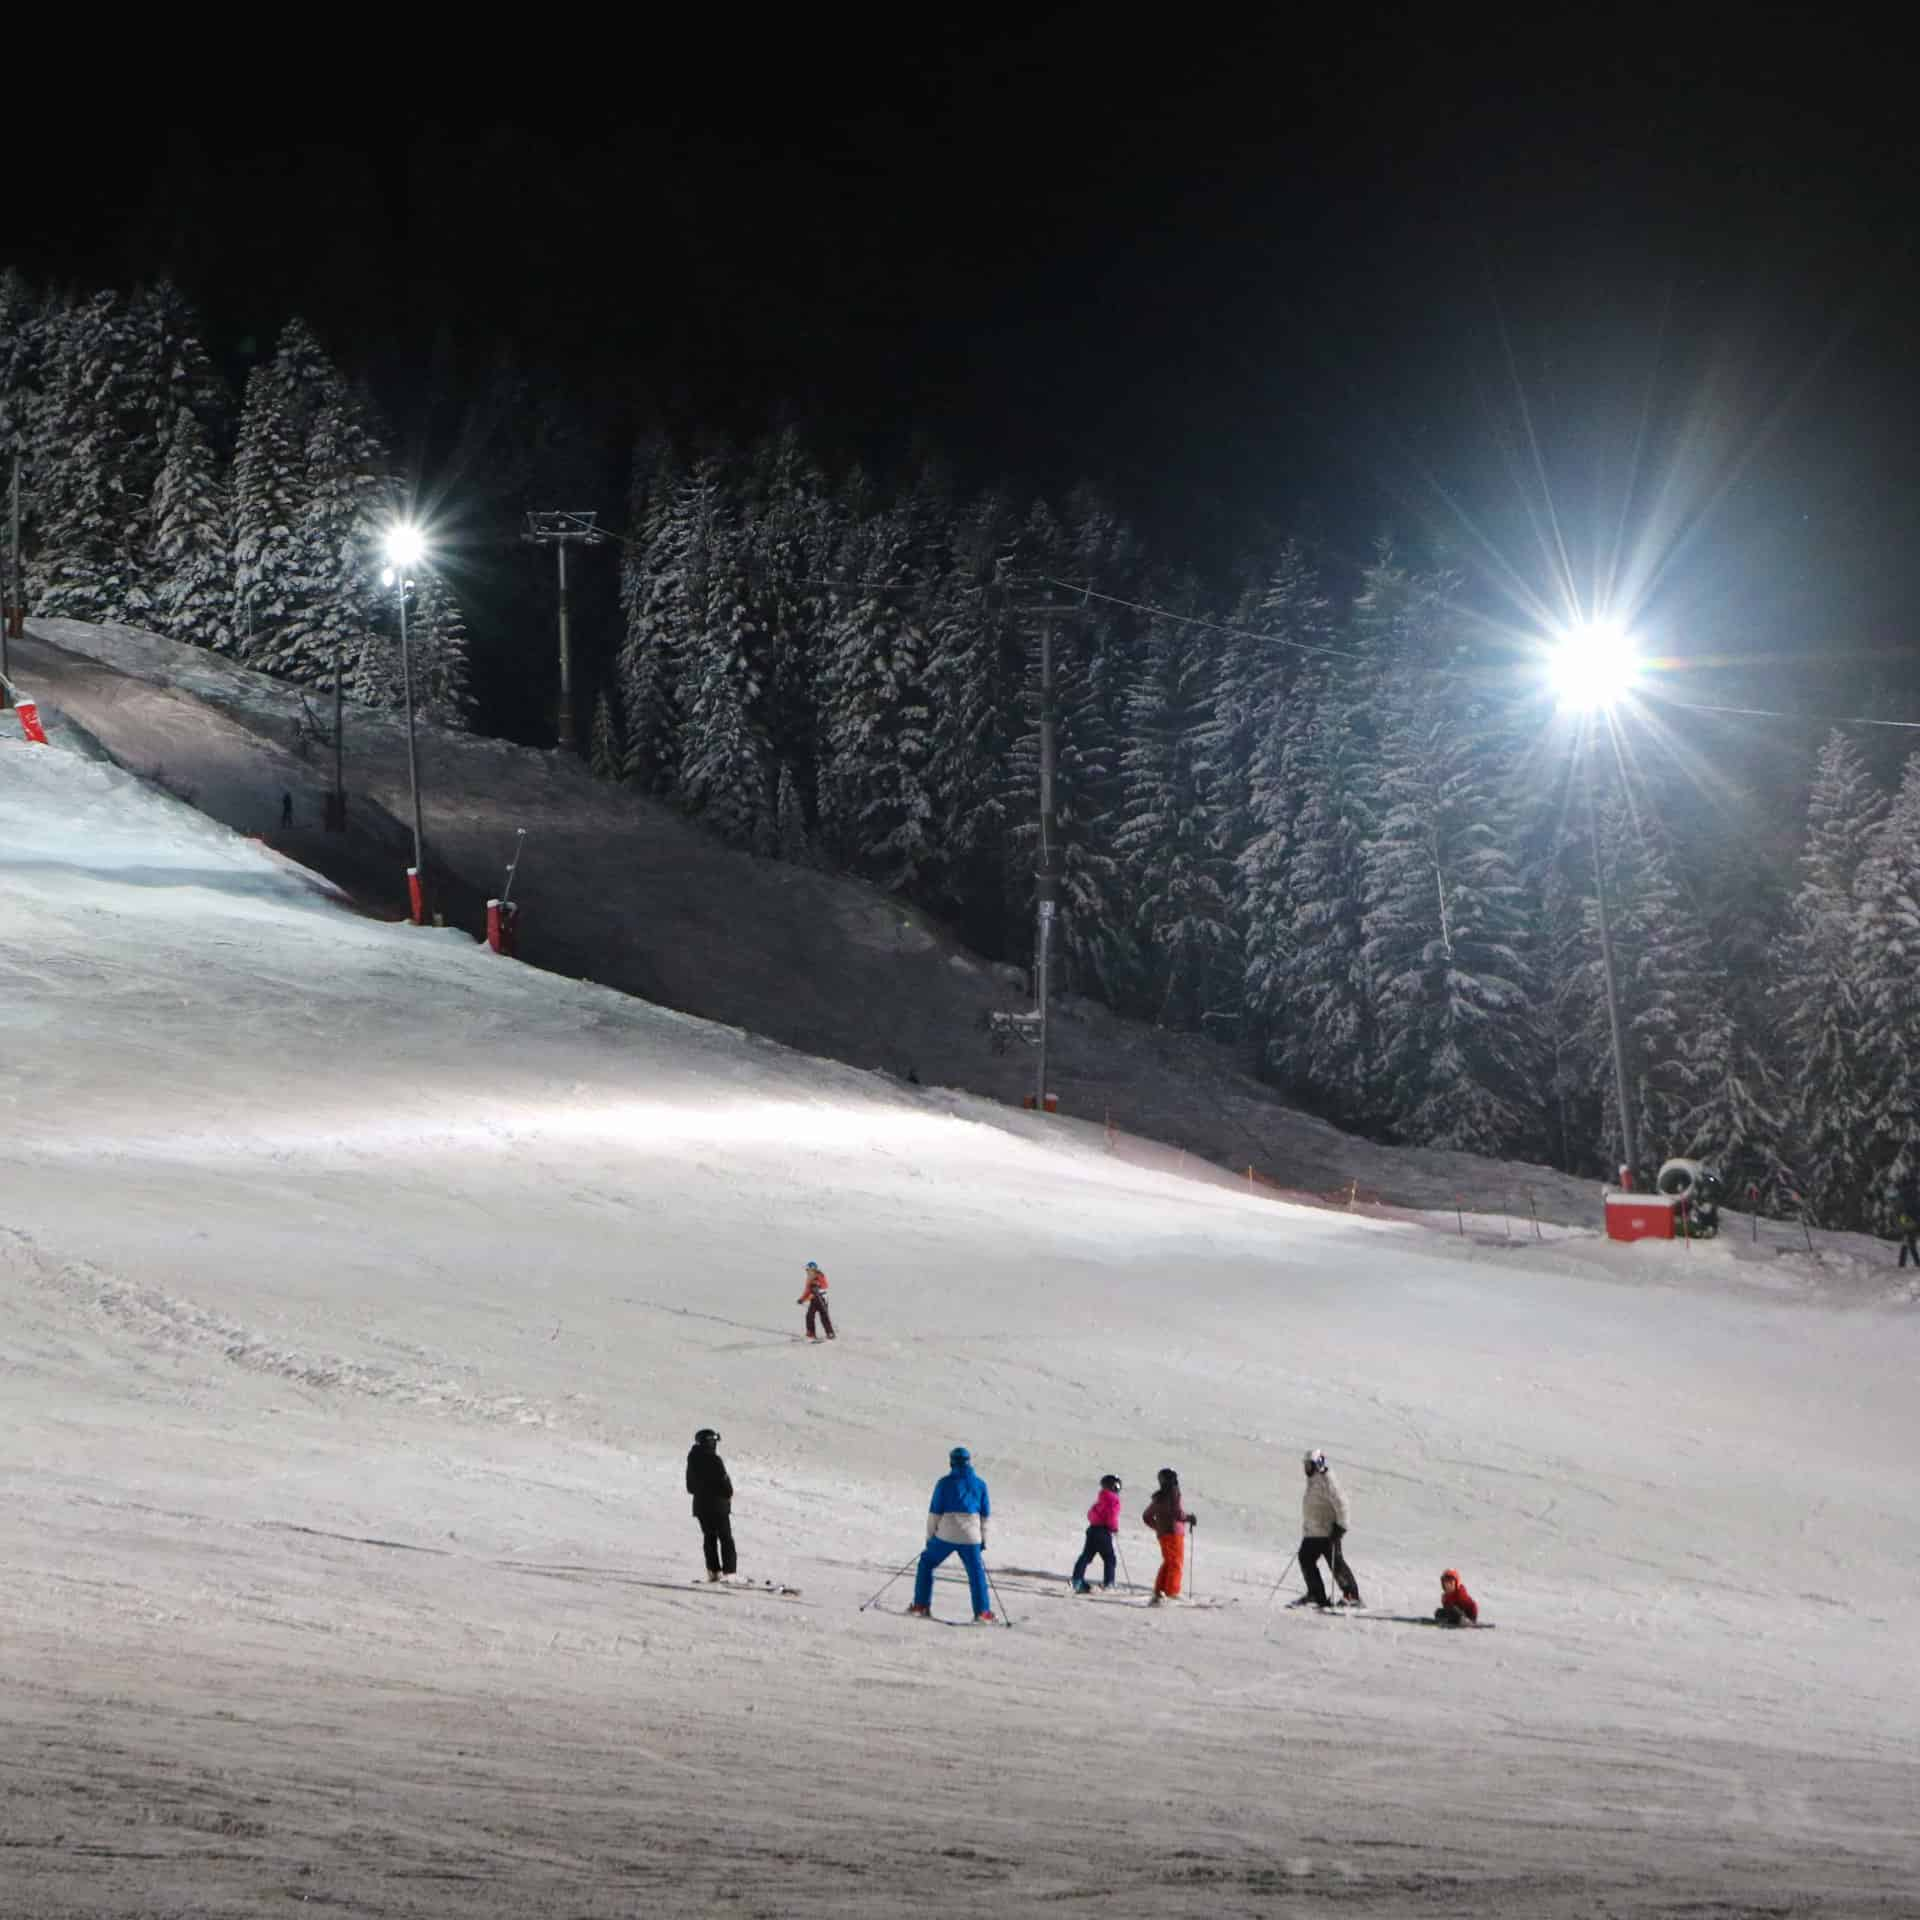 night skiing at Chatel